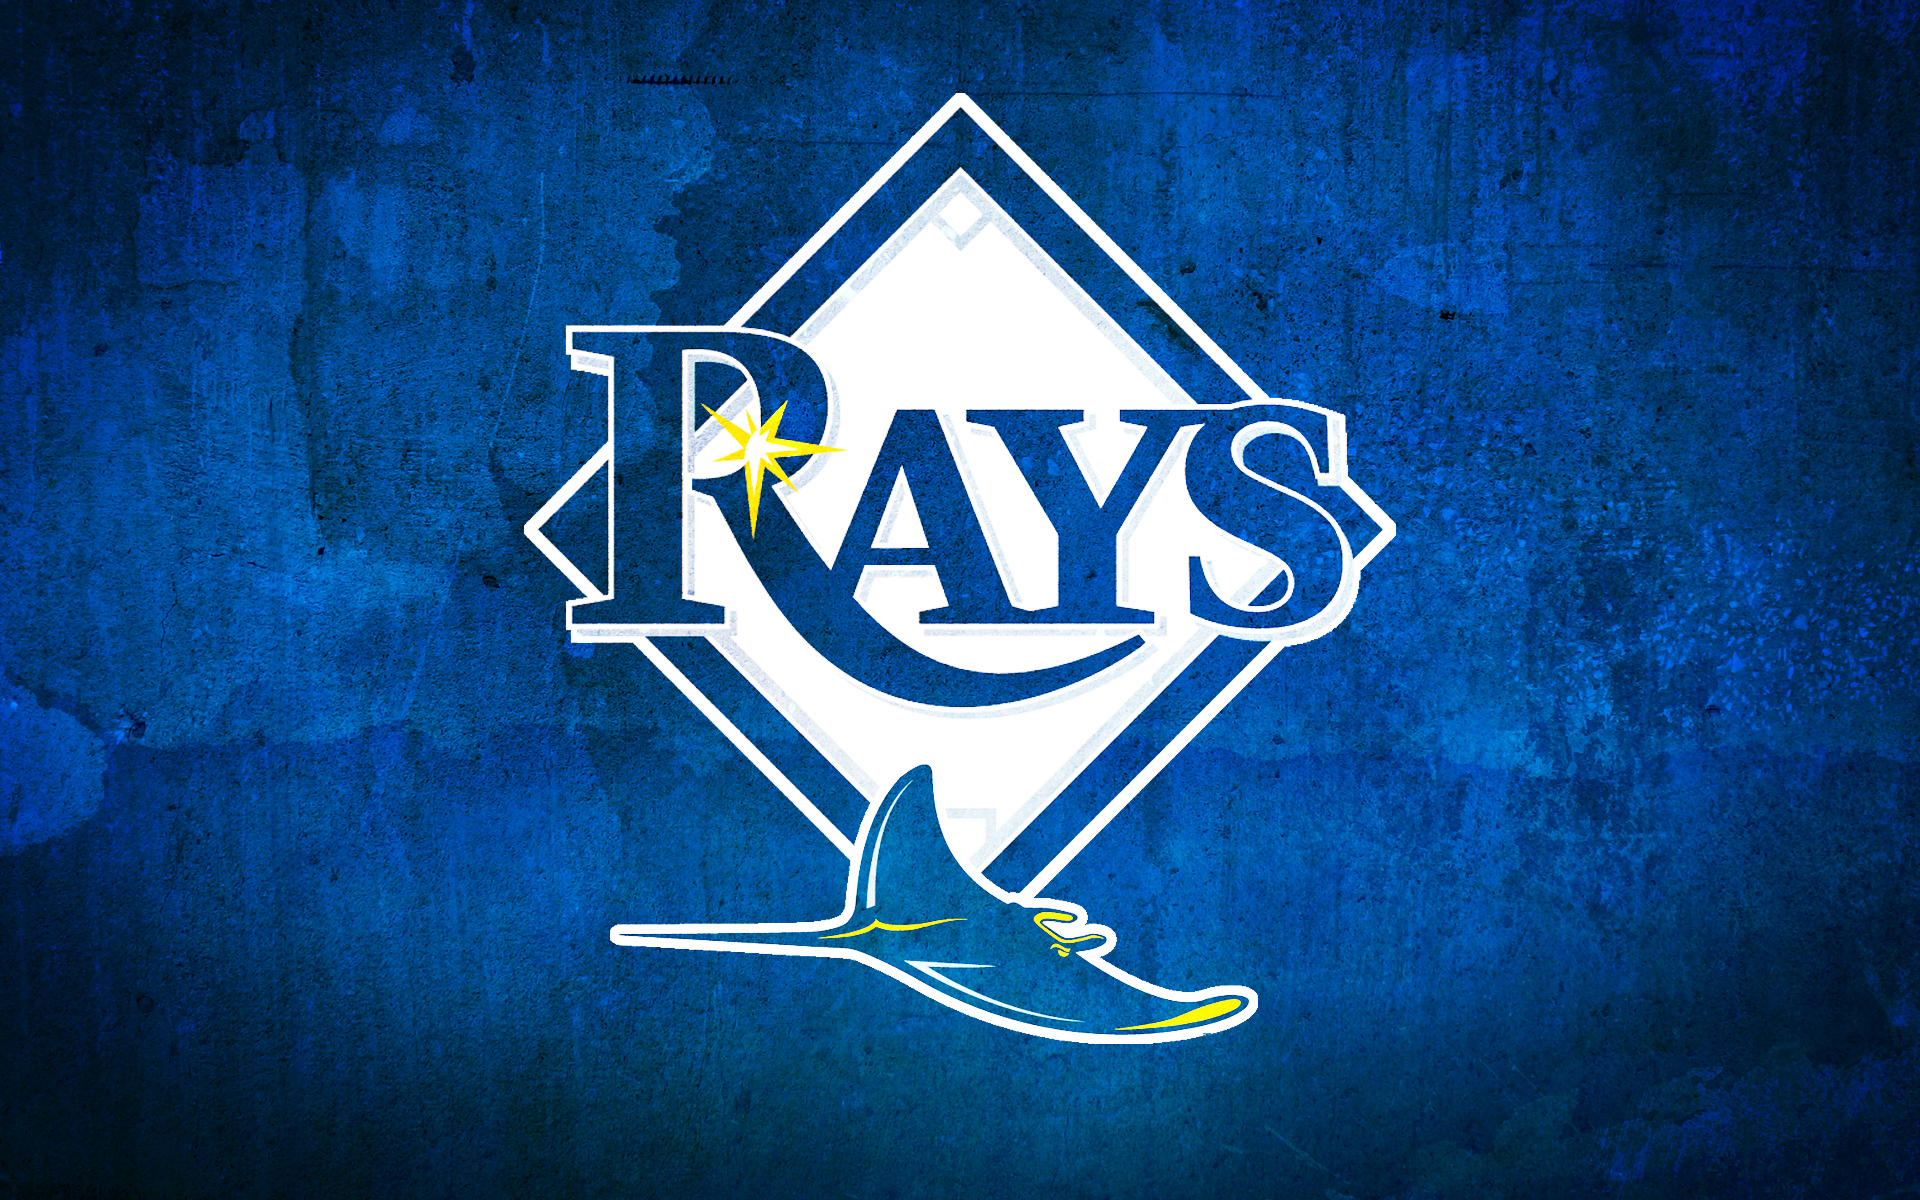 Tampa Bay Rays